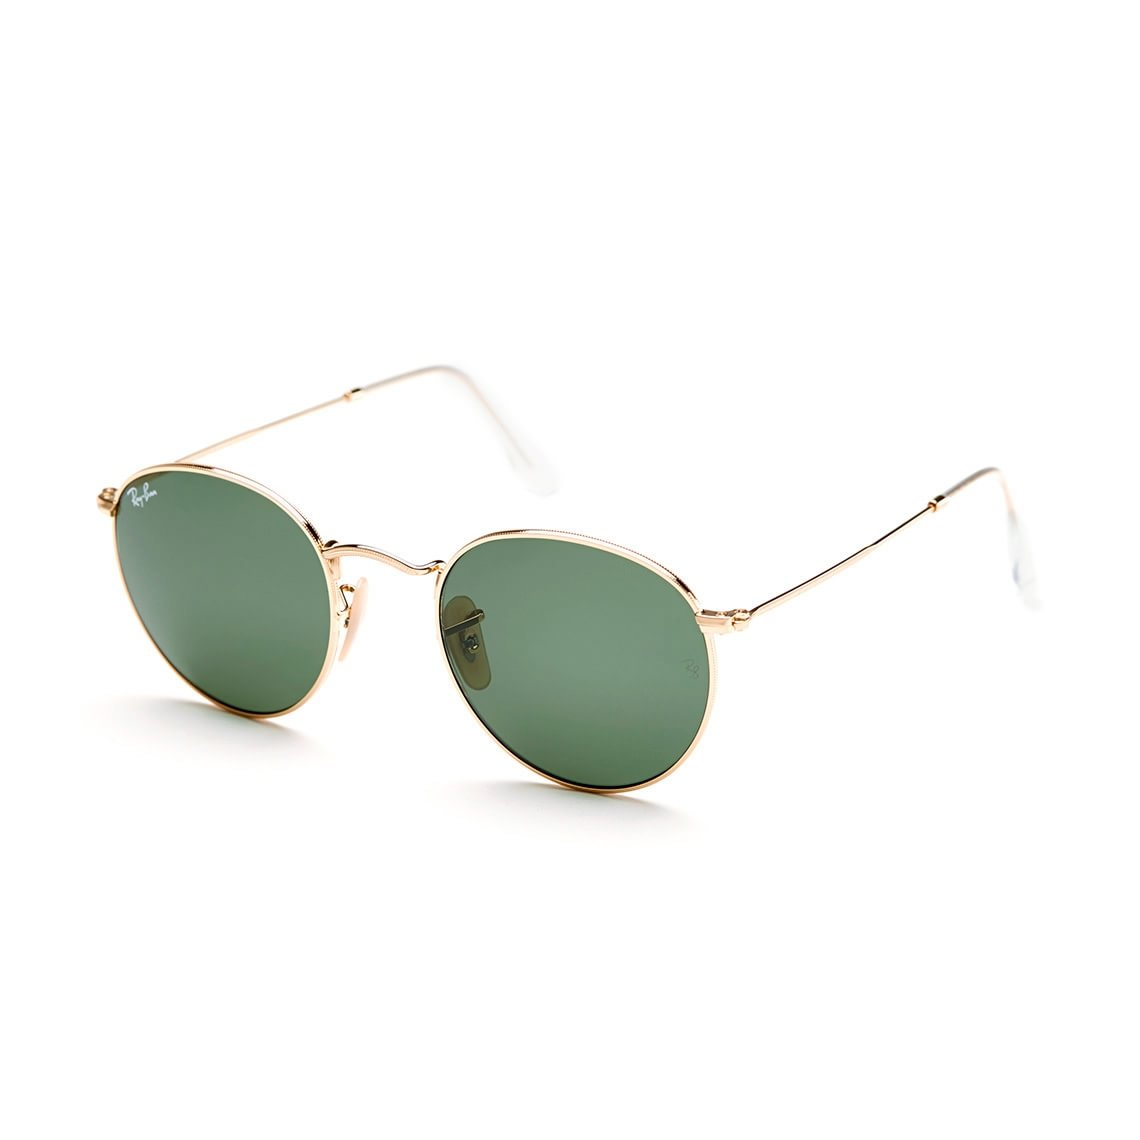 Ray-Ban Round metal RB3447 001 50